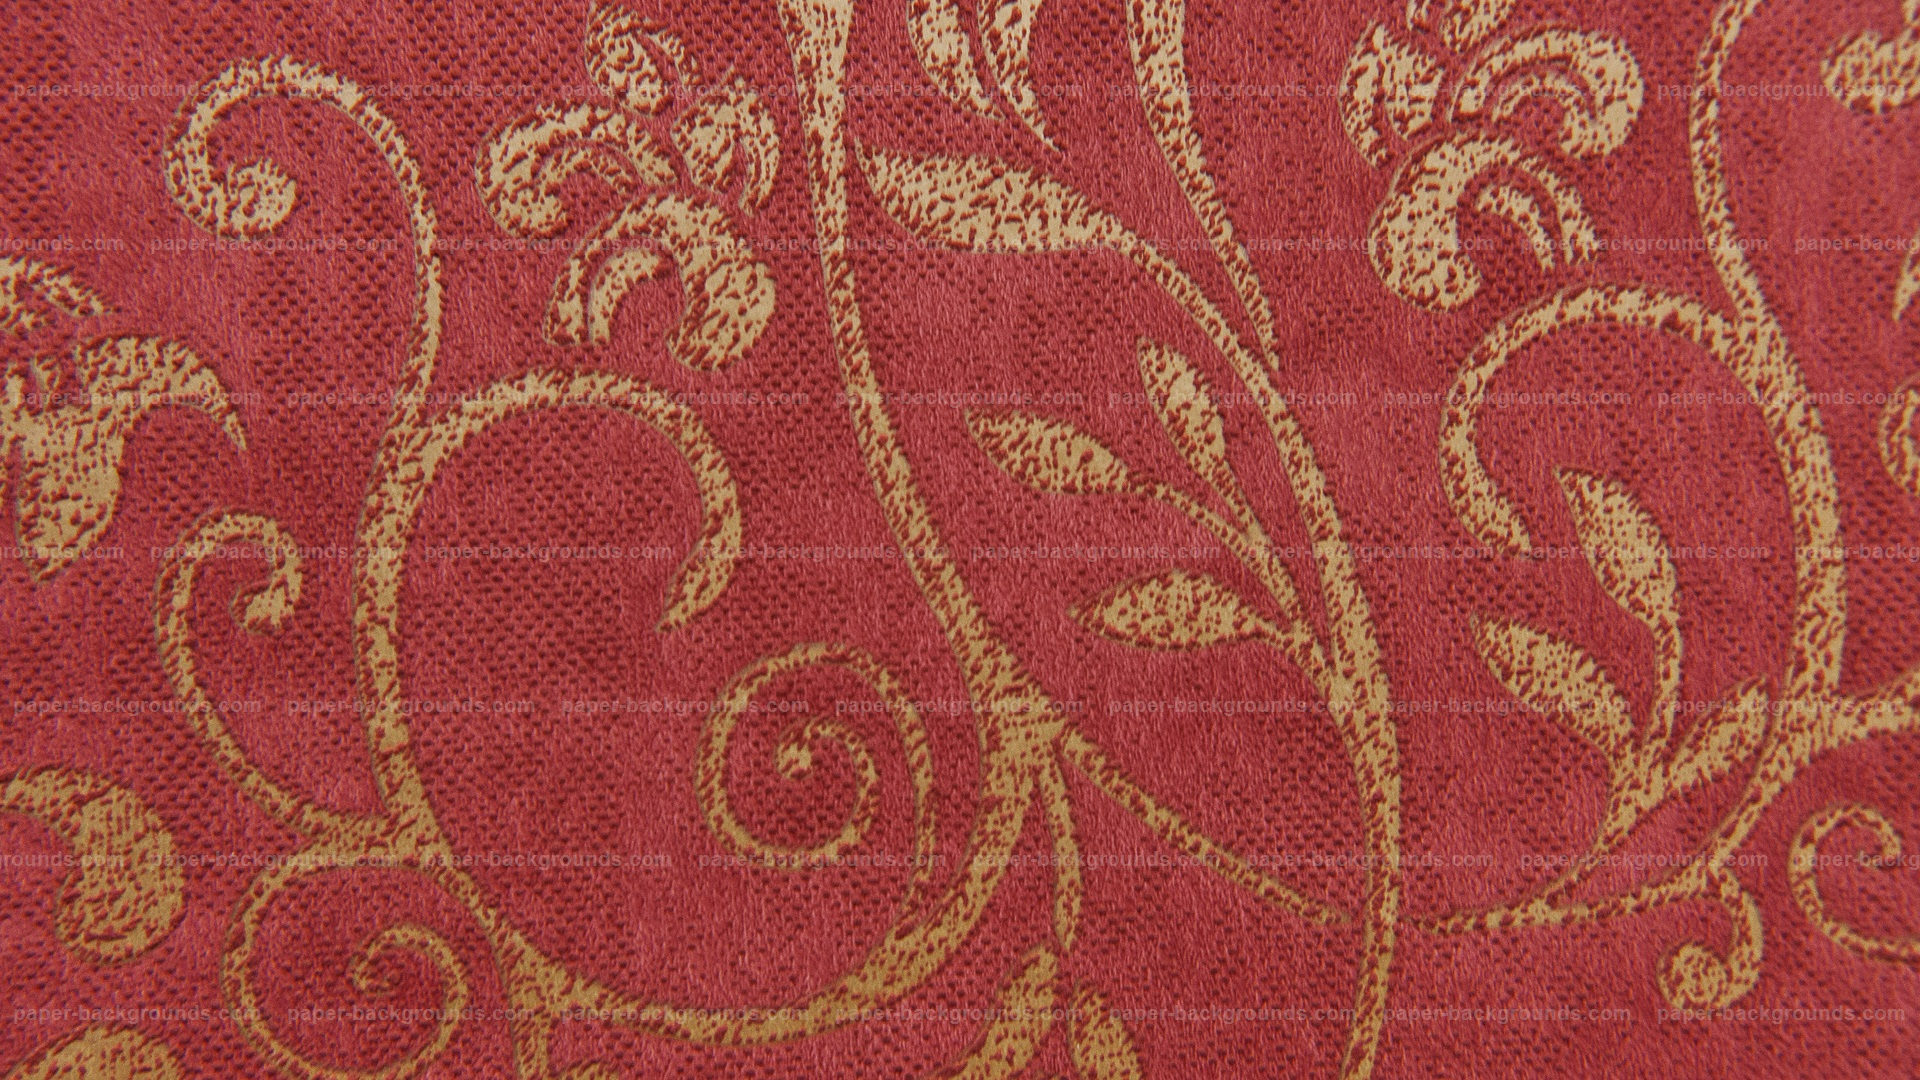 Red Carpet Floral Design Texture Background Paper Backgrounds 1920x1080